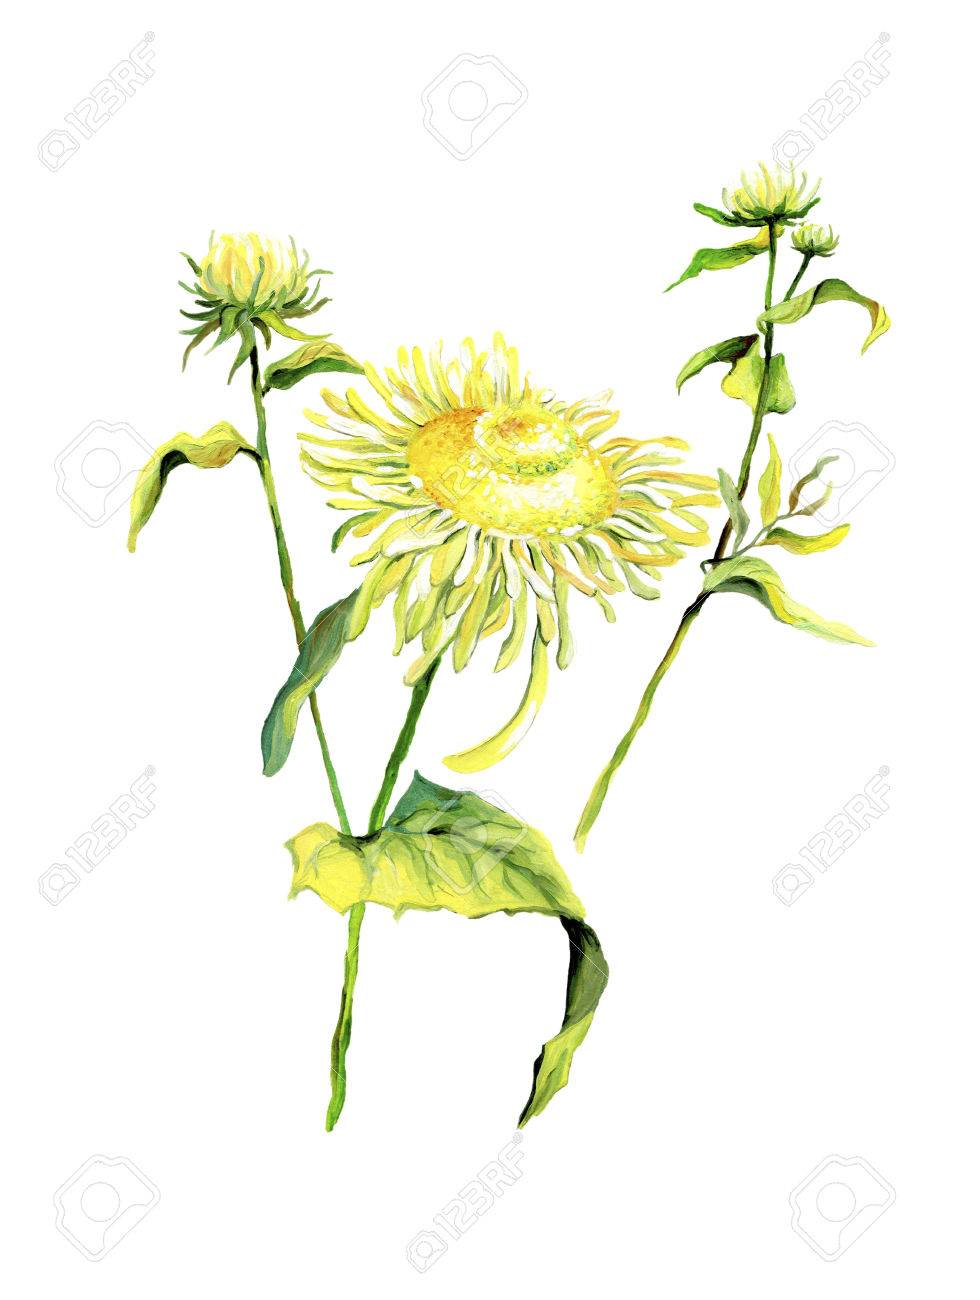 Forest flower chamomile isolated on white background.Color drawing of daisies with leaves - 60105301